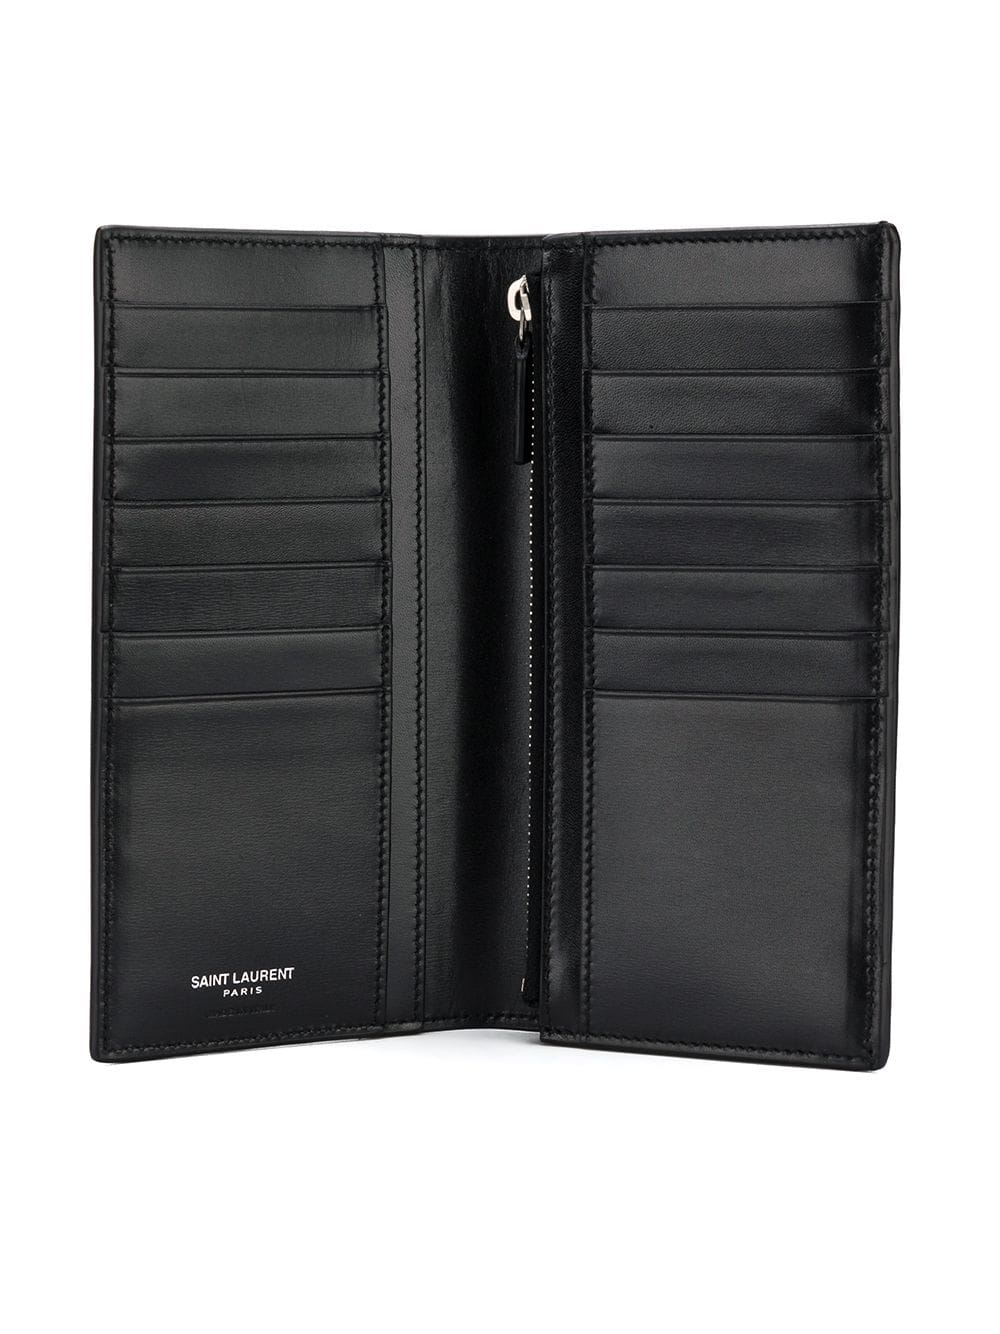 SAINT LAURENT SINGLE FOLD LOGO LONG WALLET